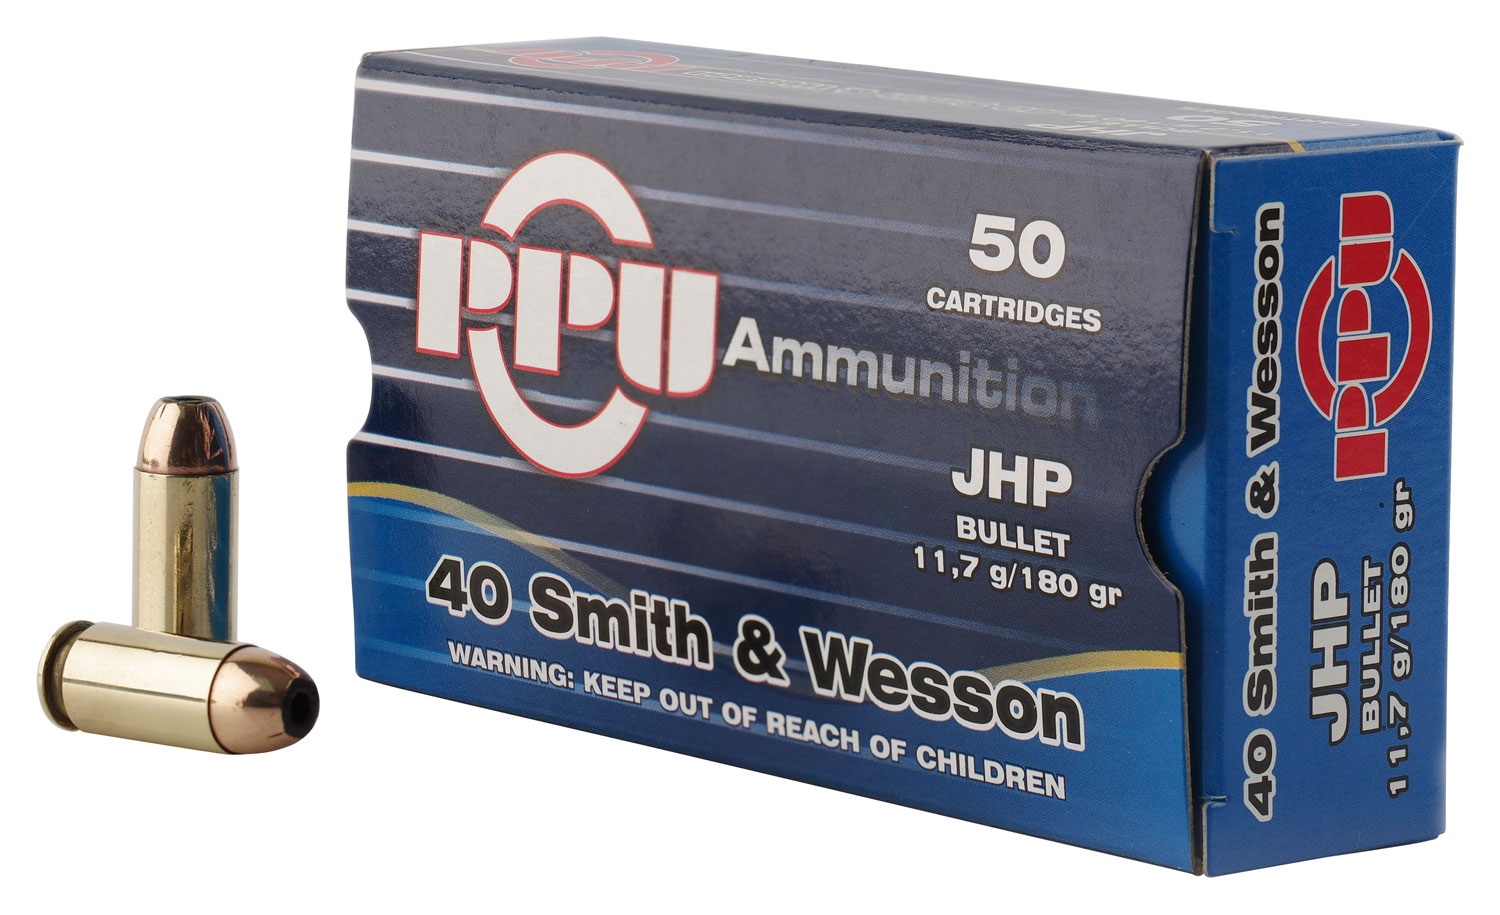 PPU PPR4.01 Handgun 40 Smith & Wesson (S&W) 180 GR Jacketed Hollow Point 50 Bx/ 10 Cs